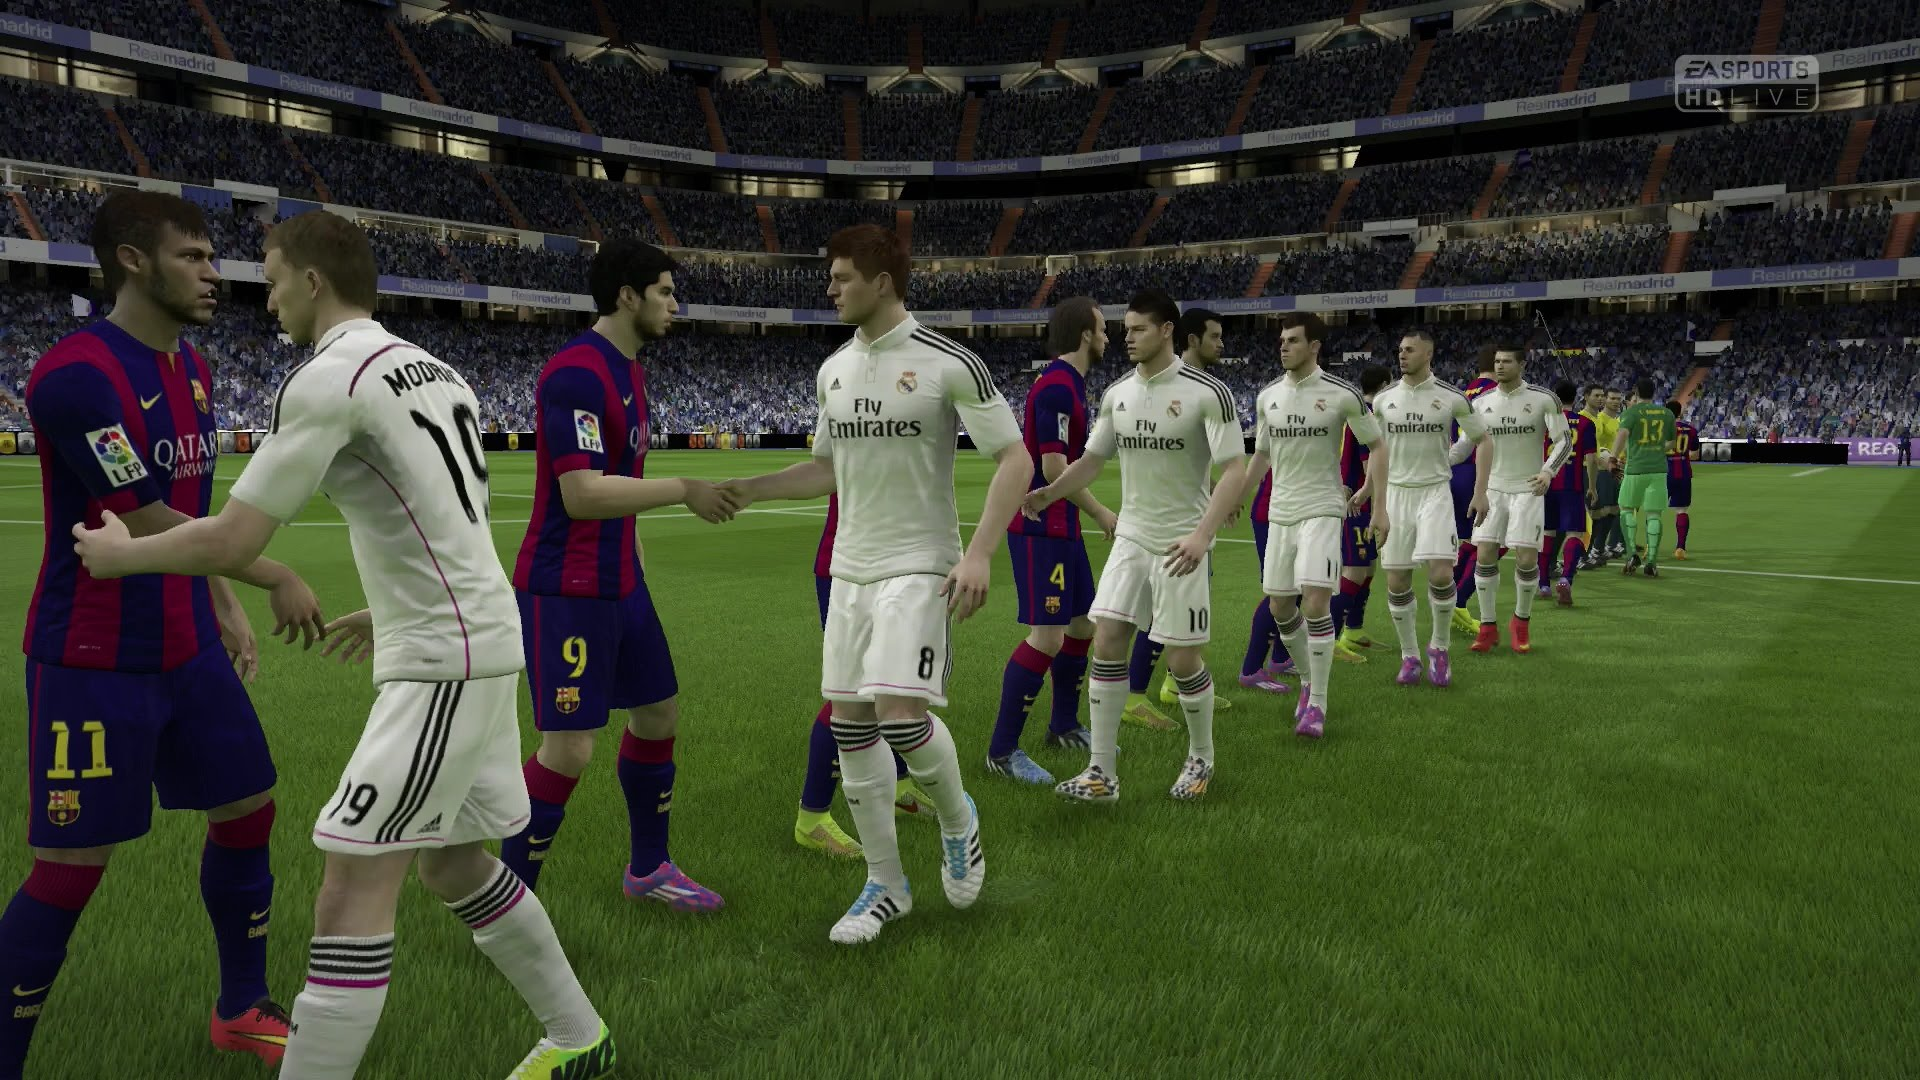 FIFA 15 Sports Game